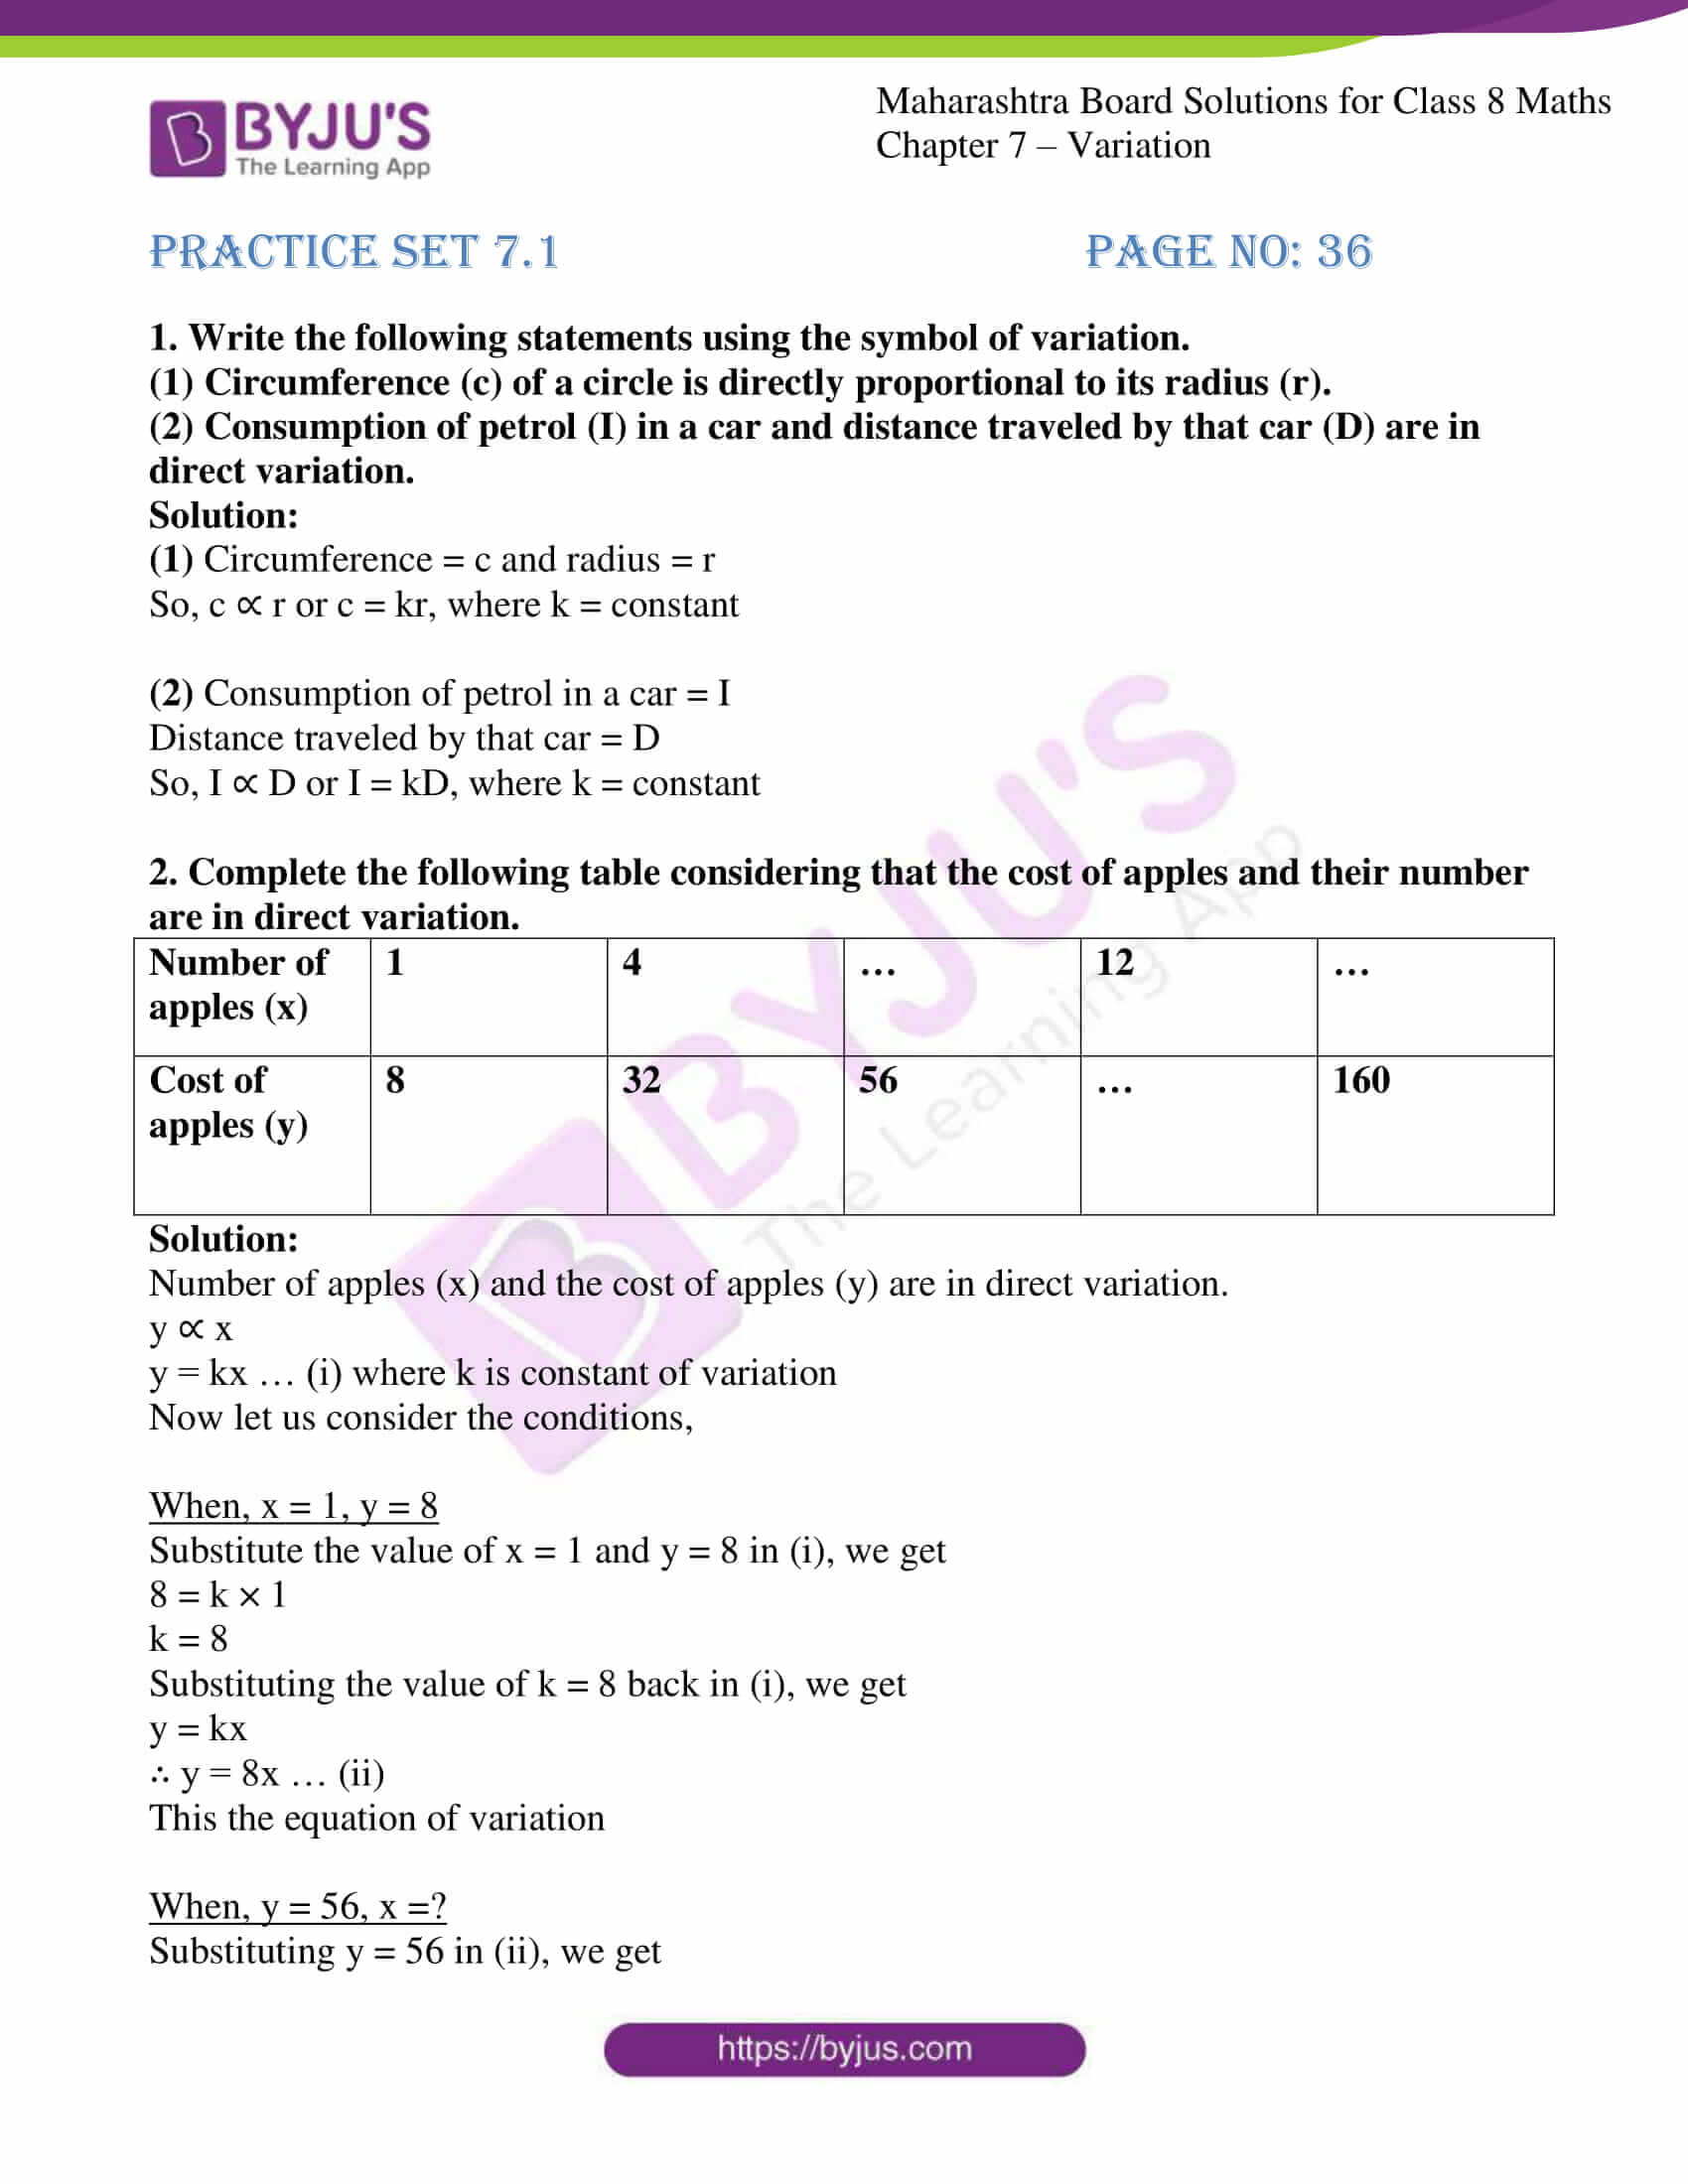 msbshse sol for class 8 maths chapter 7 01